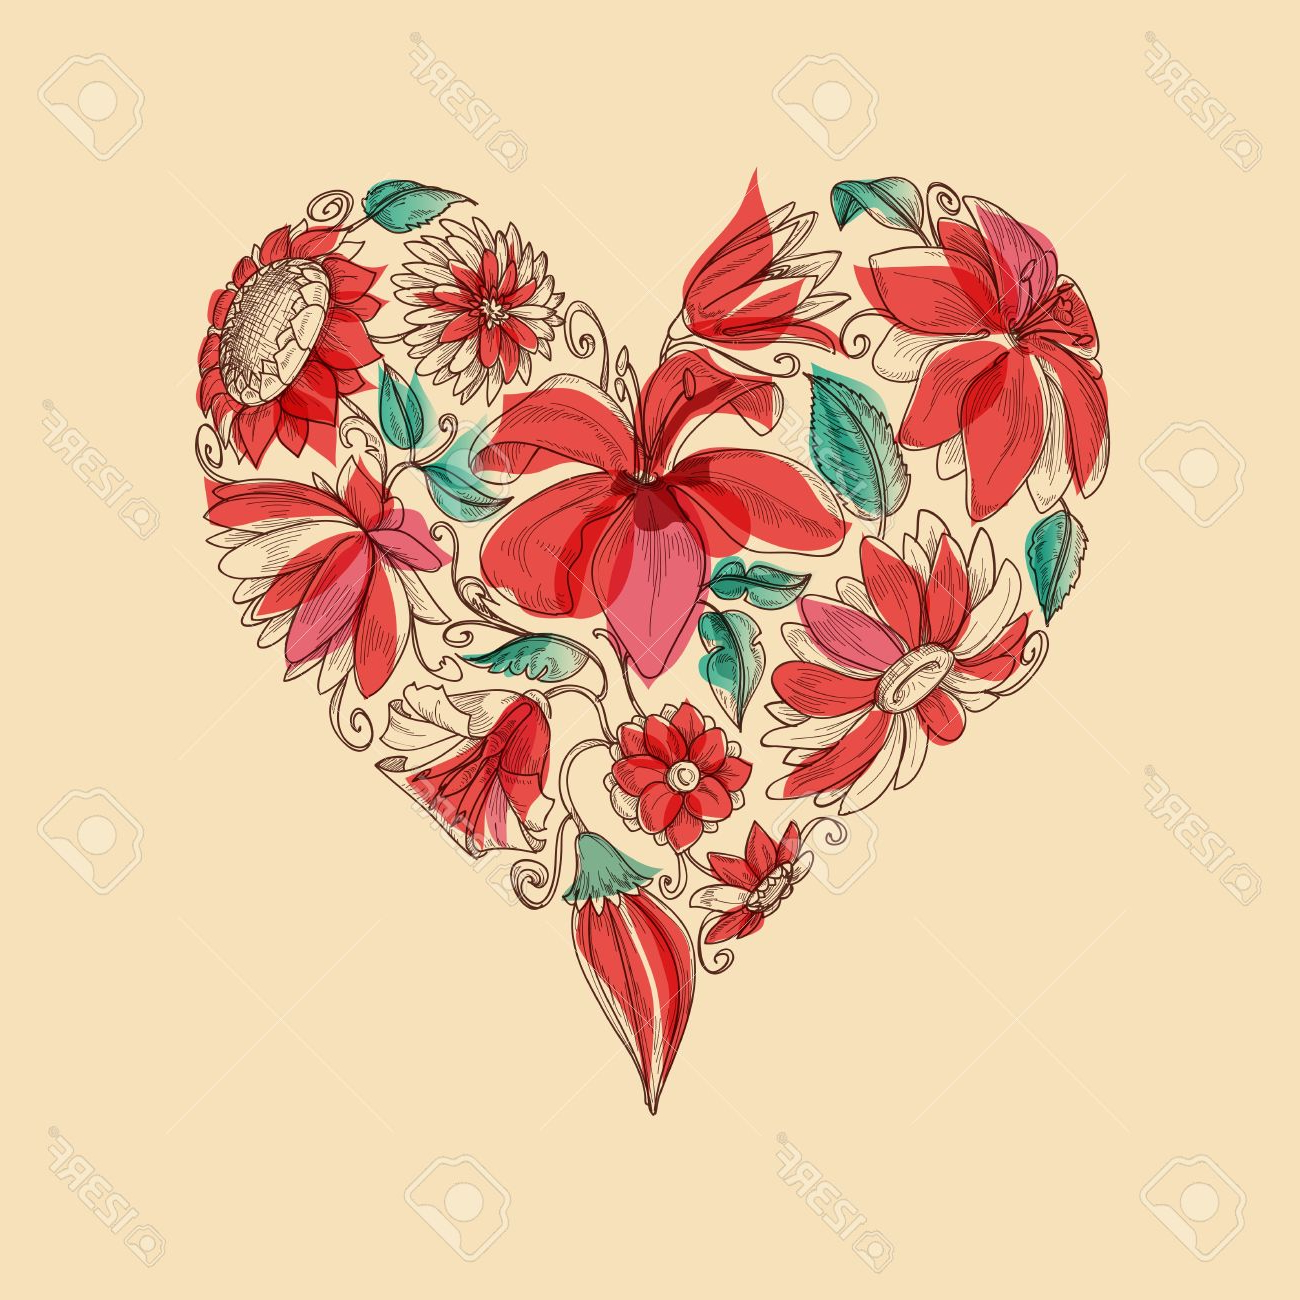 Love Flower Drawing at GetDrawings.com | Free for personal use Love ...